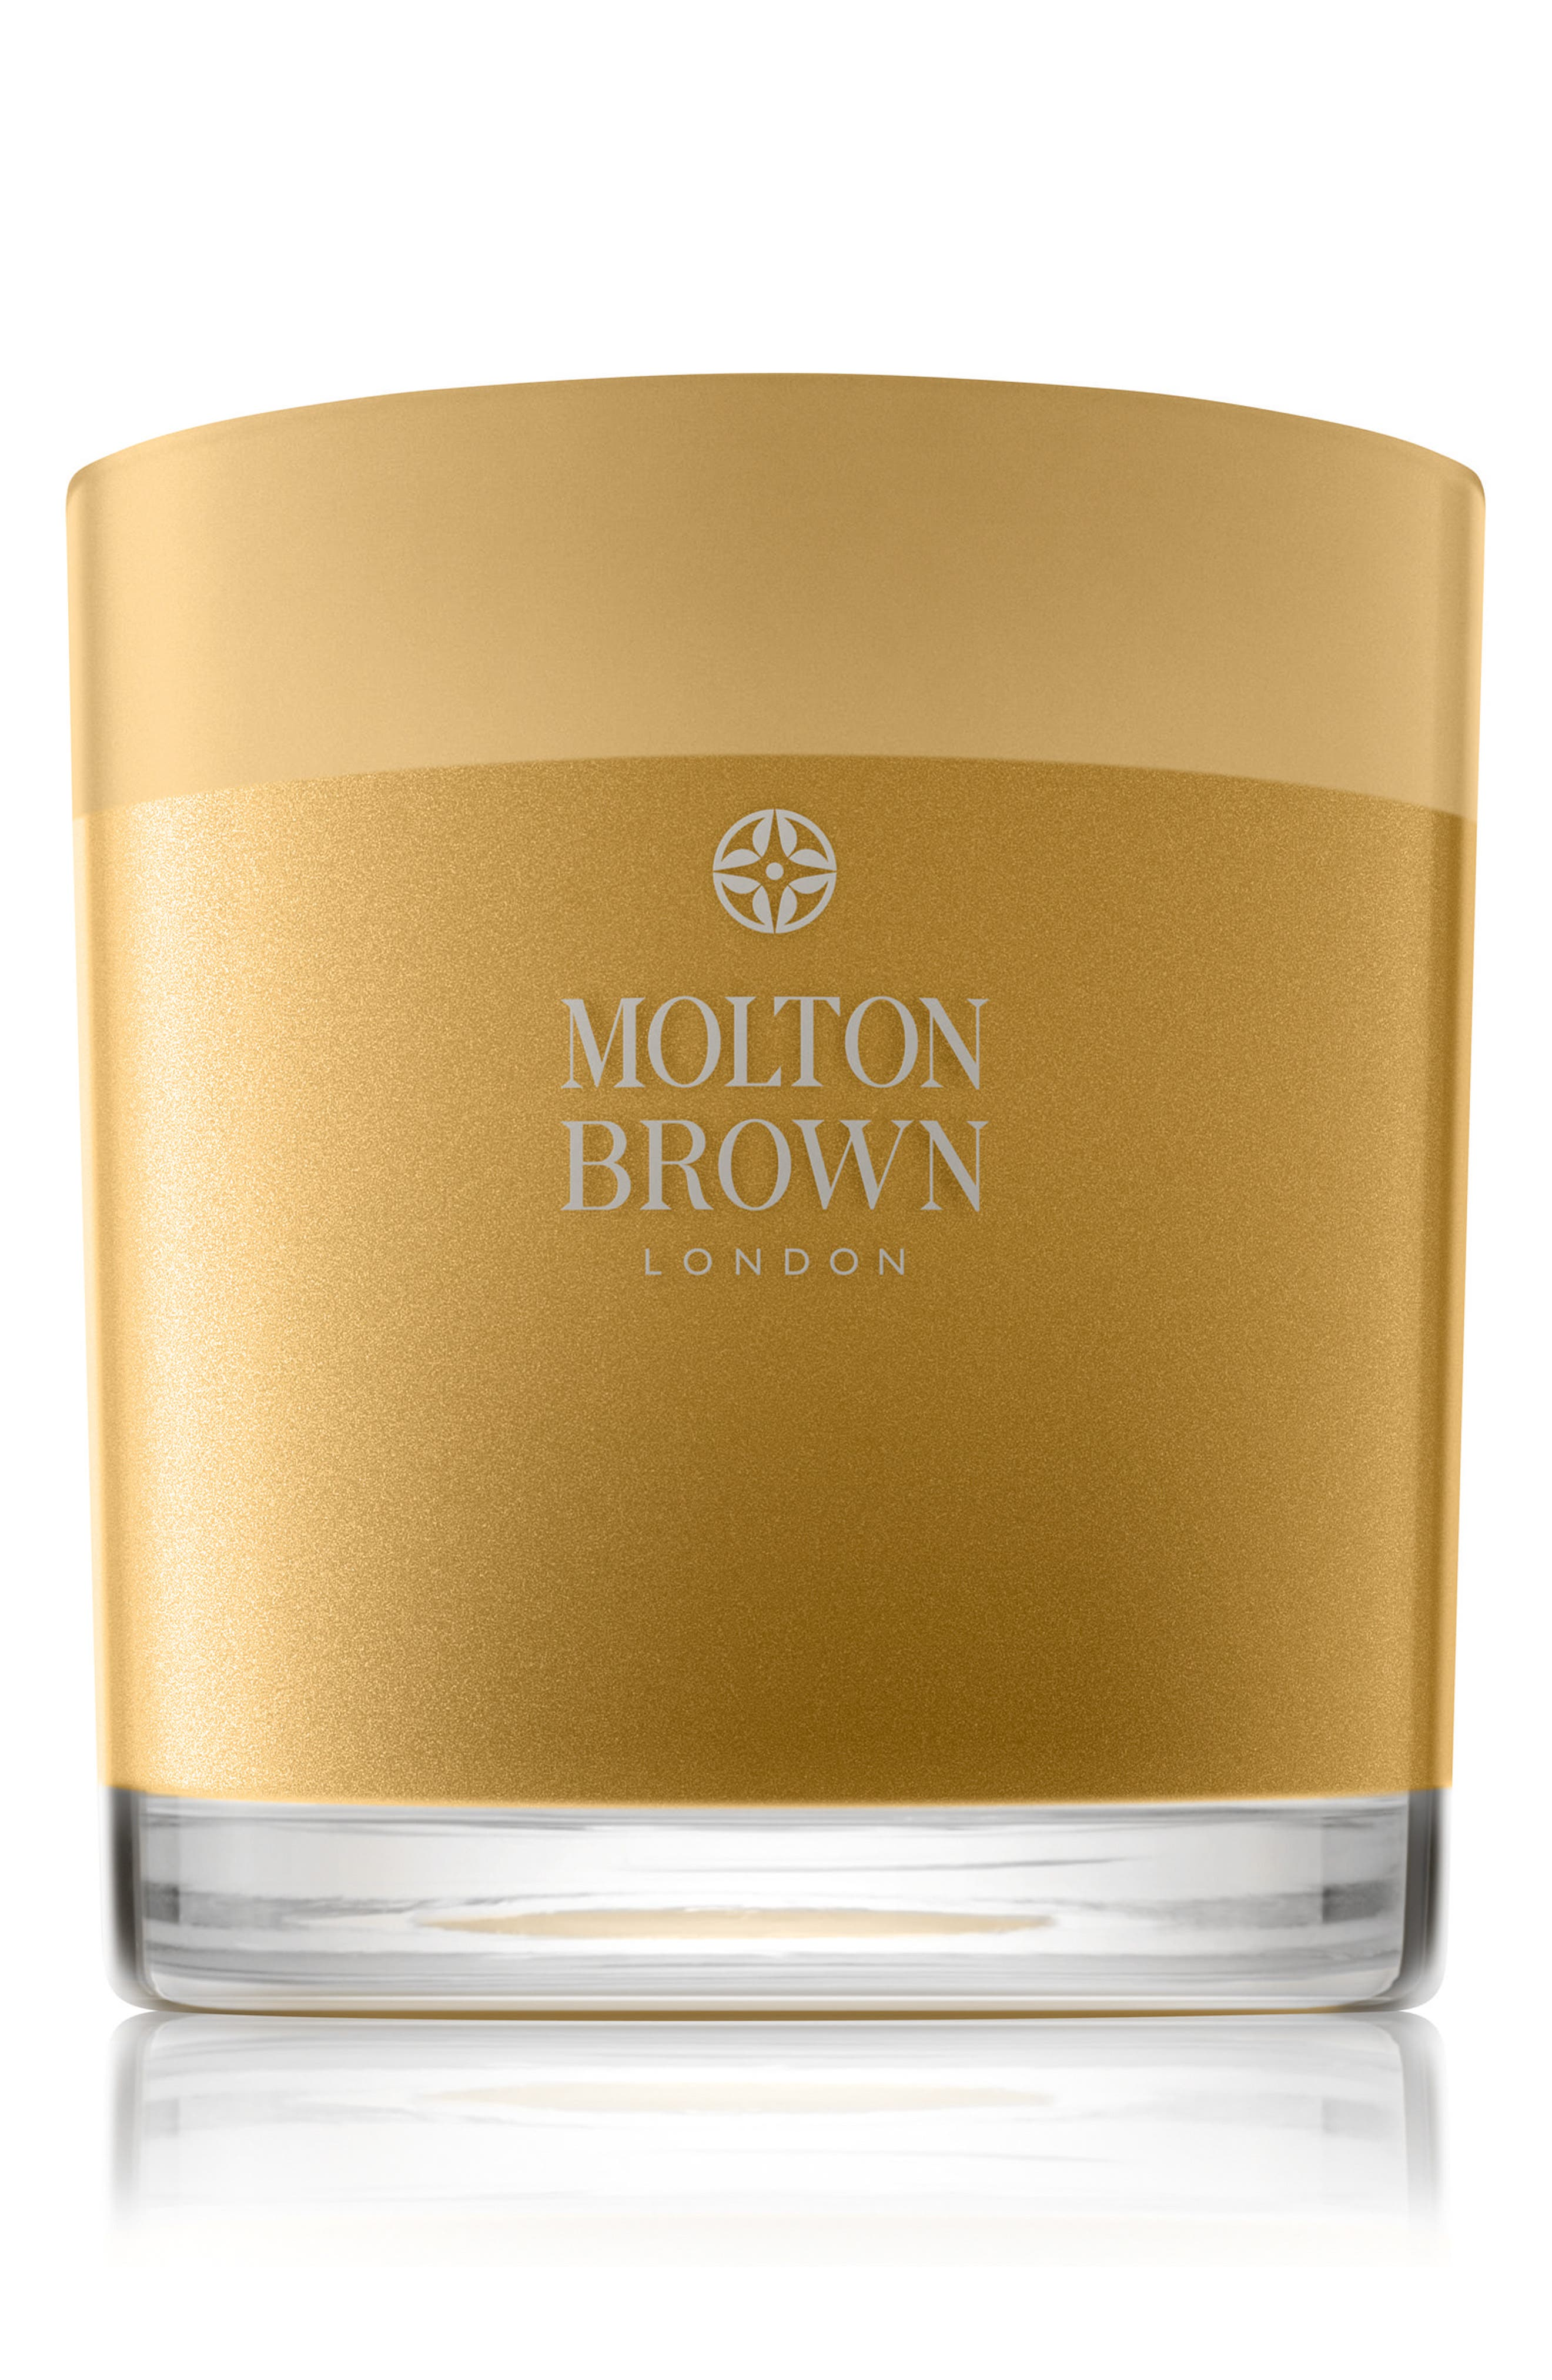 MOLTON BROWN London 3-Wick Candle